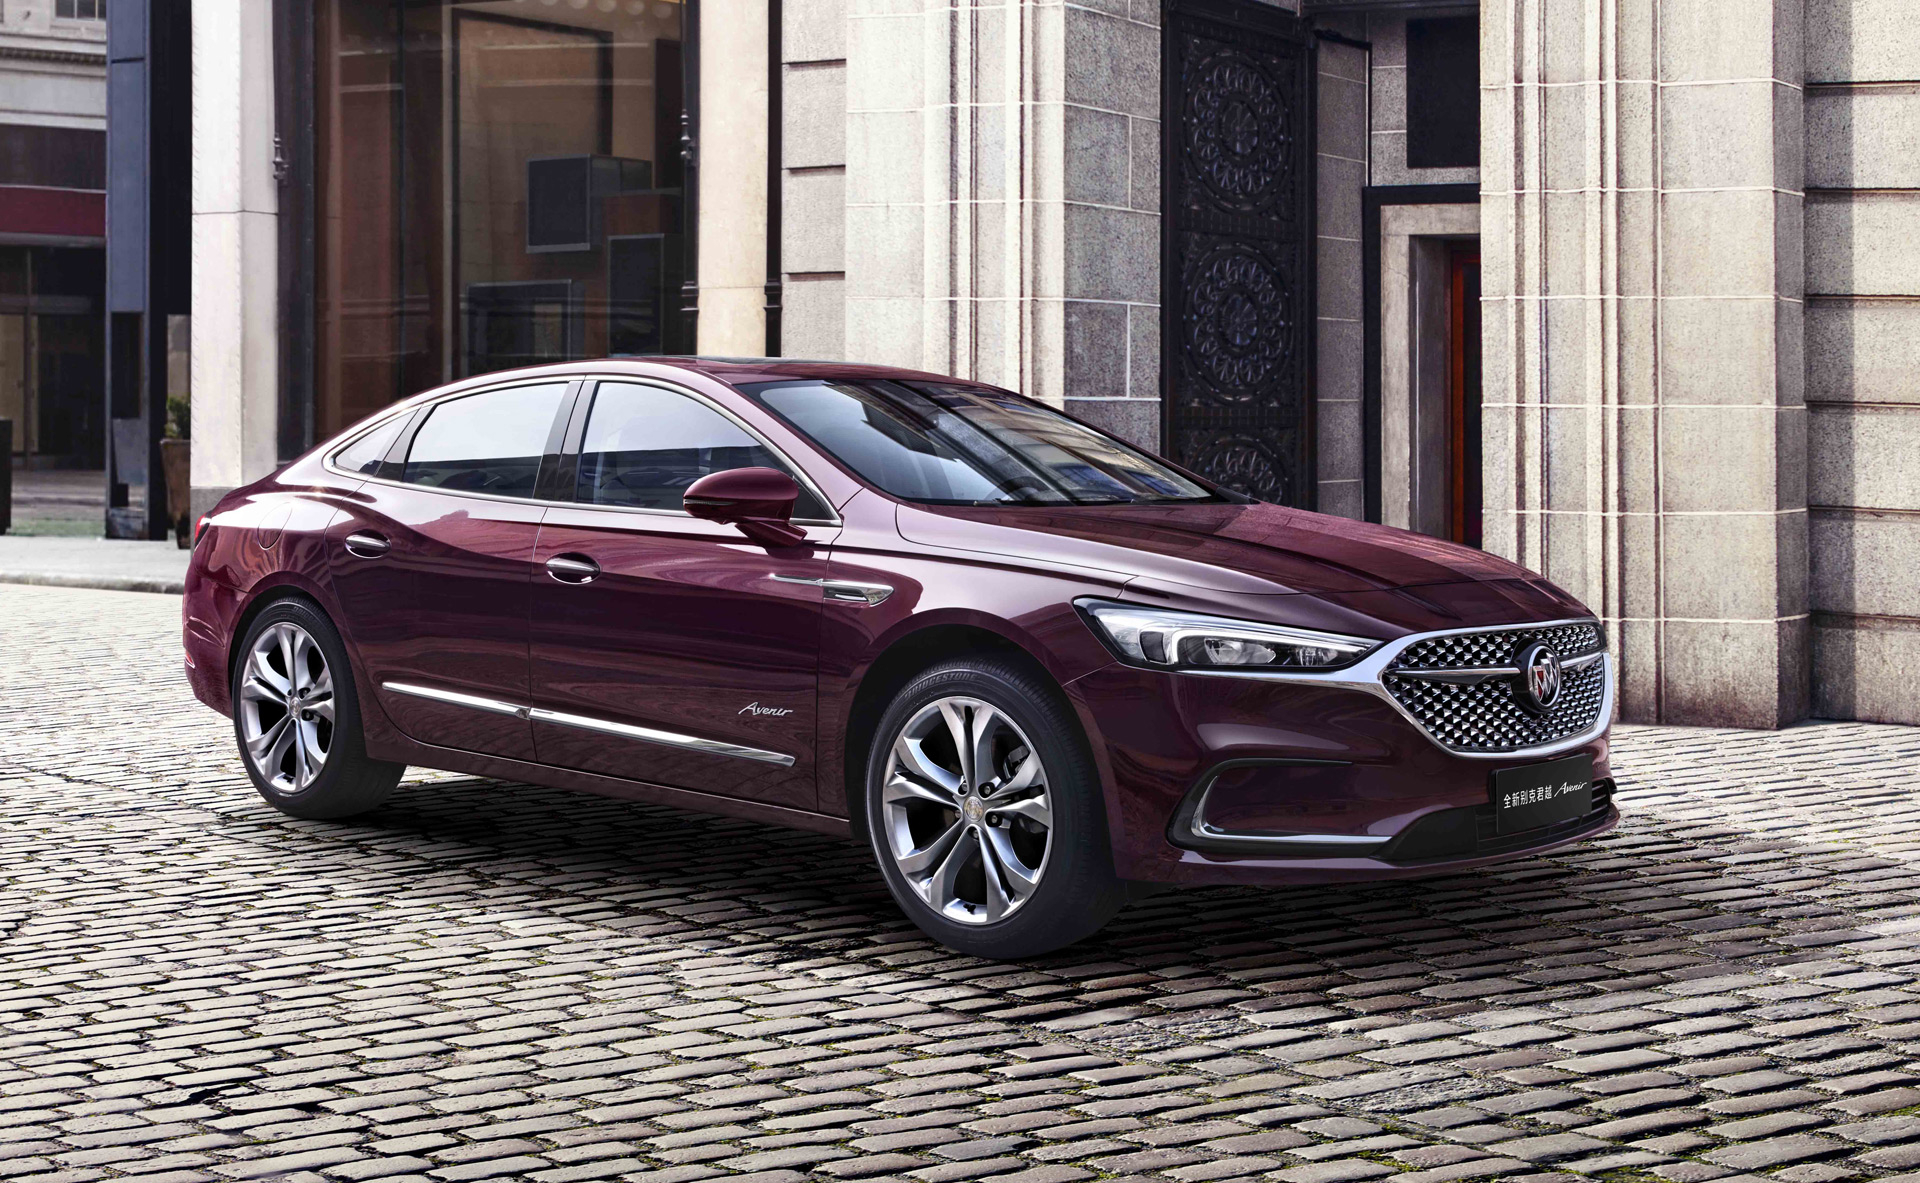 2020 Buick Lacrosse Made Handsome Just As It's Dropped In Us Picture Of A New 2021 Buick Lacrosse